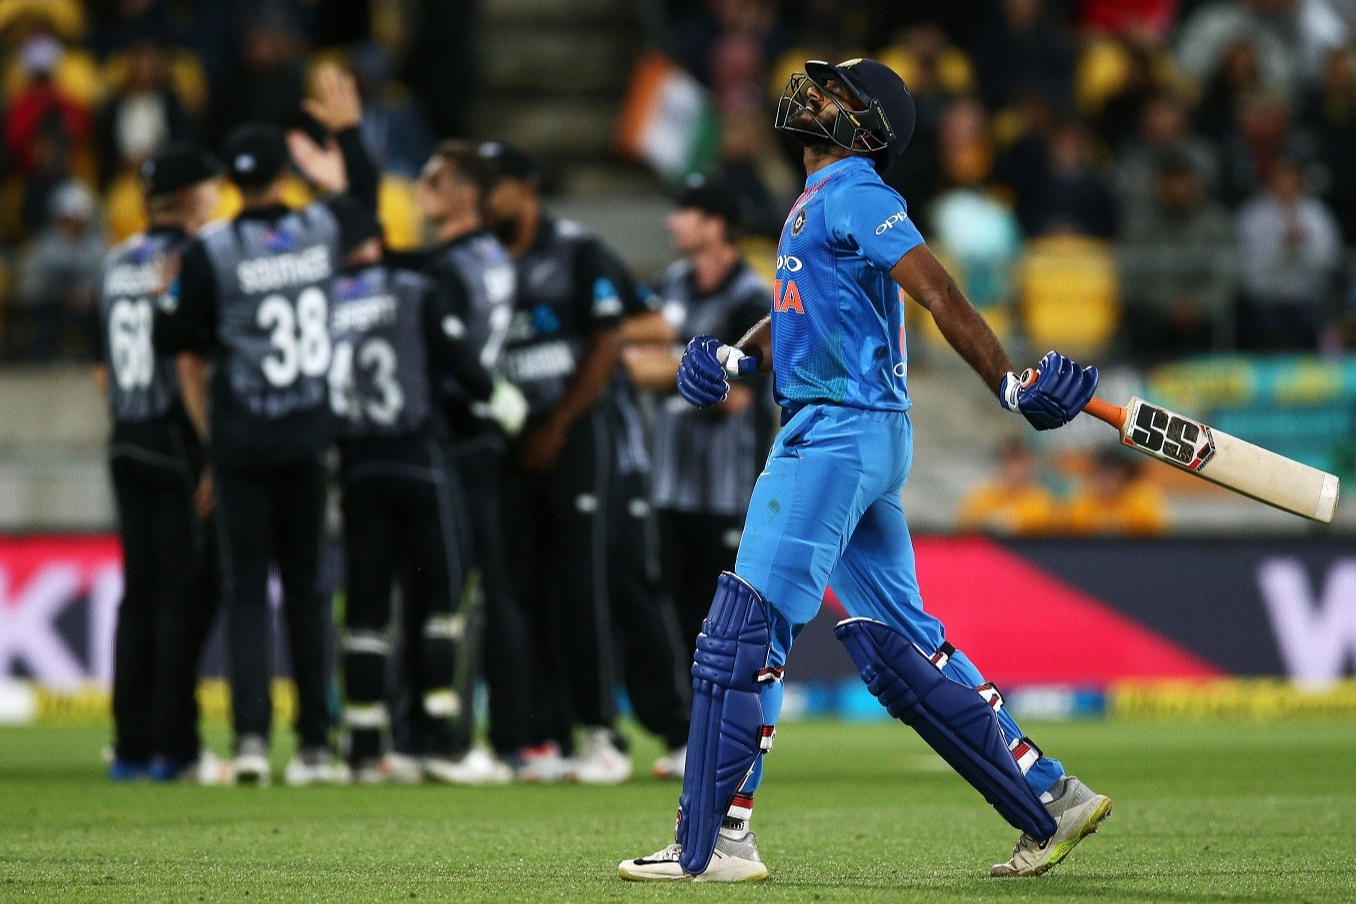 New Zealand vs India - 1st T20 Review